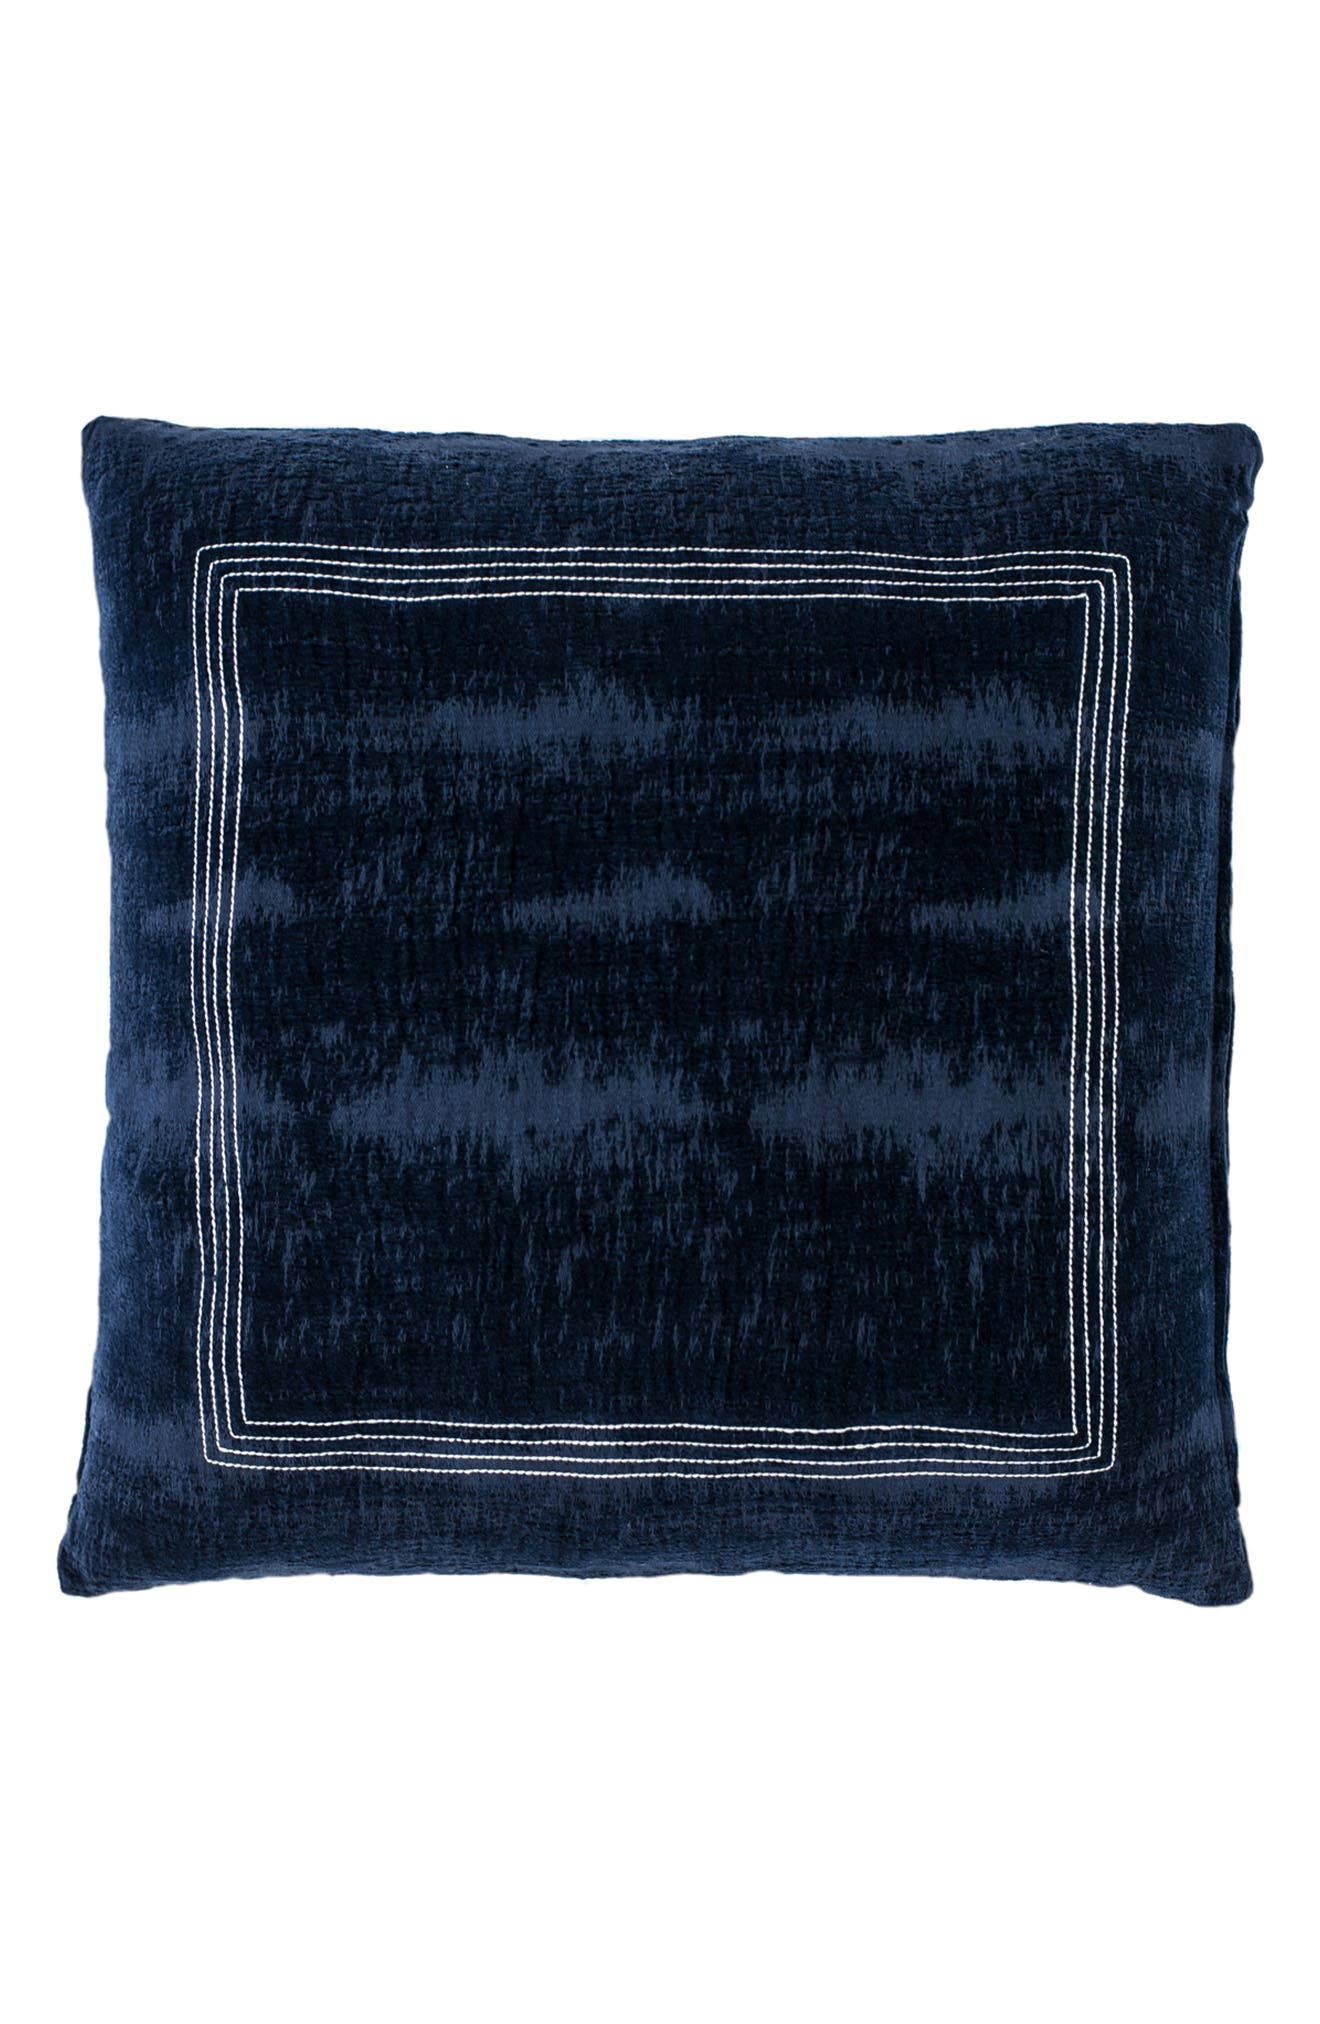 EADIE LIFESTYLE Soho Scatter Cotton Chenille Accent Pillow, Main, color, NAVY/ WHITE